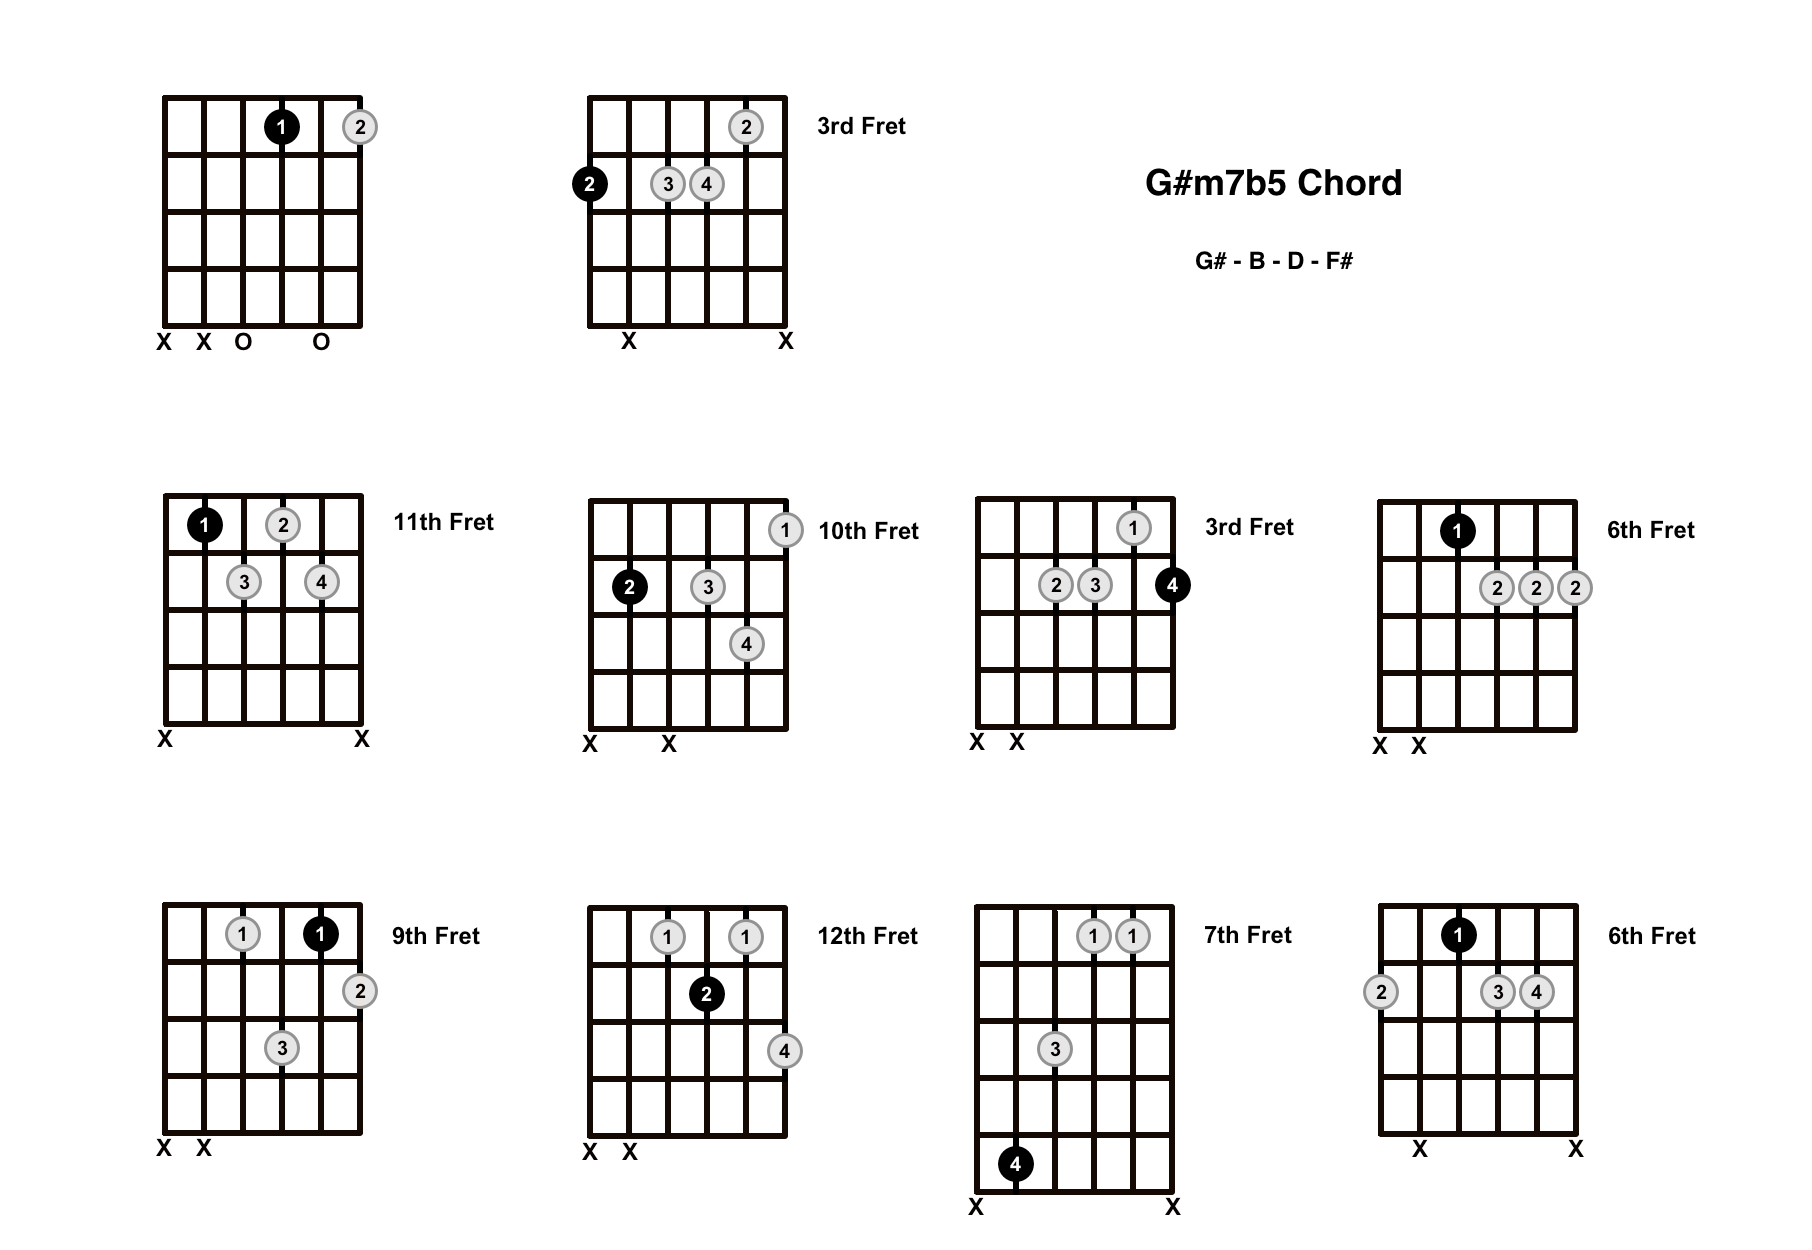 G#m7b5 Chord On The Guitar (G Sharp Minor 7 Flat 5, G Sharp Half Diminished) – Diagrams, Finger Positions and Theory